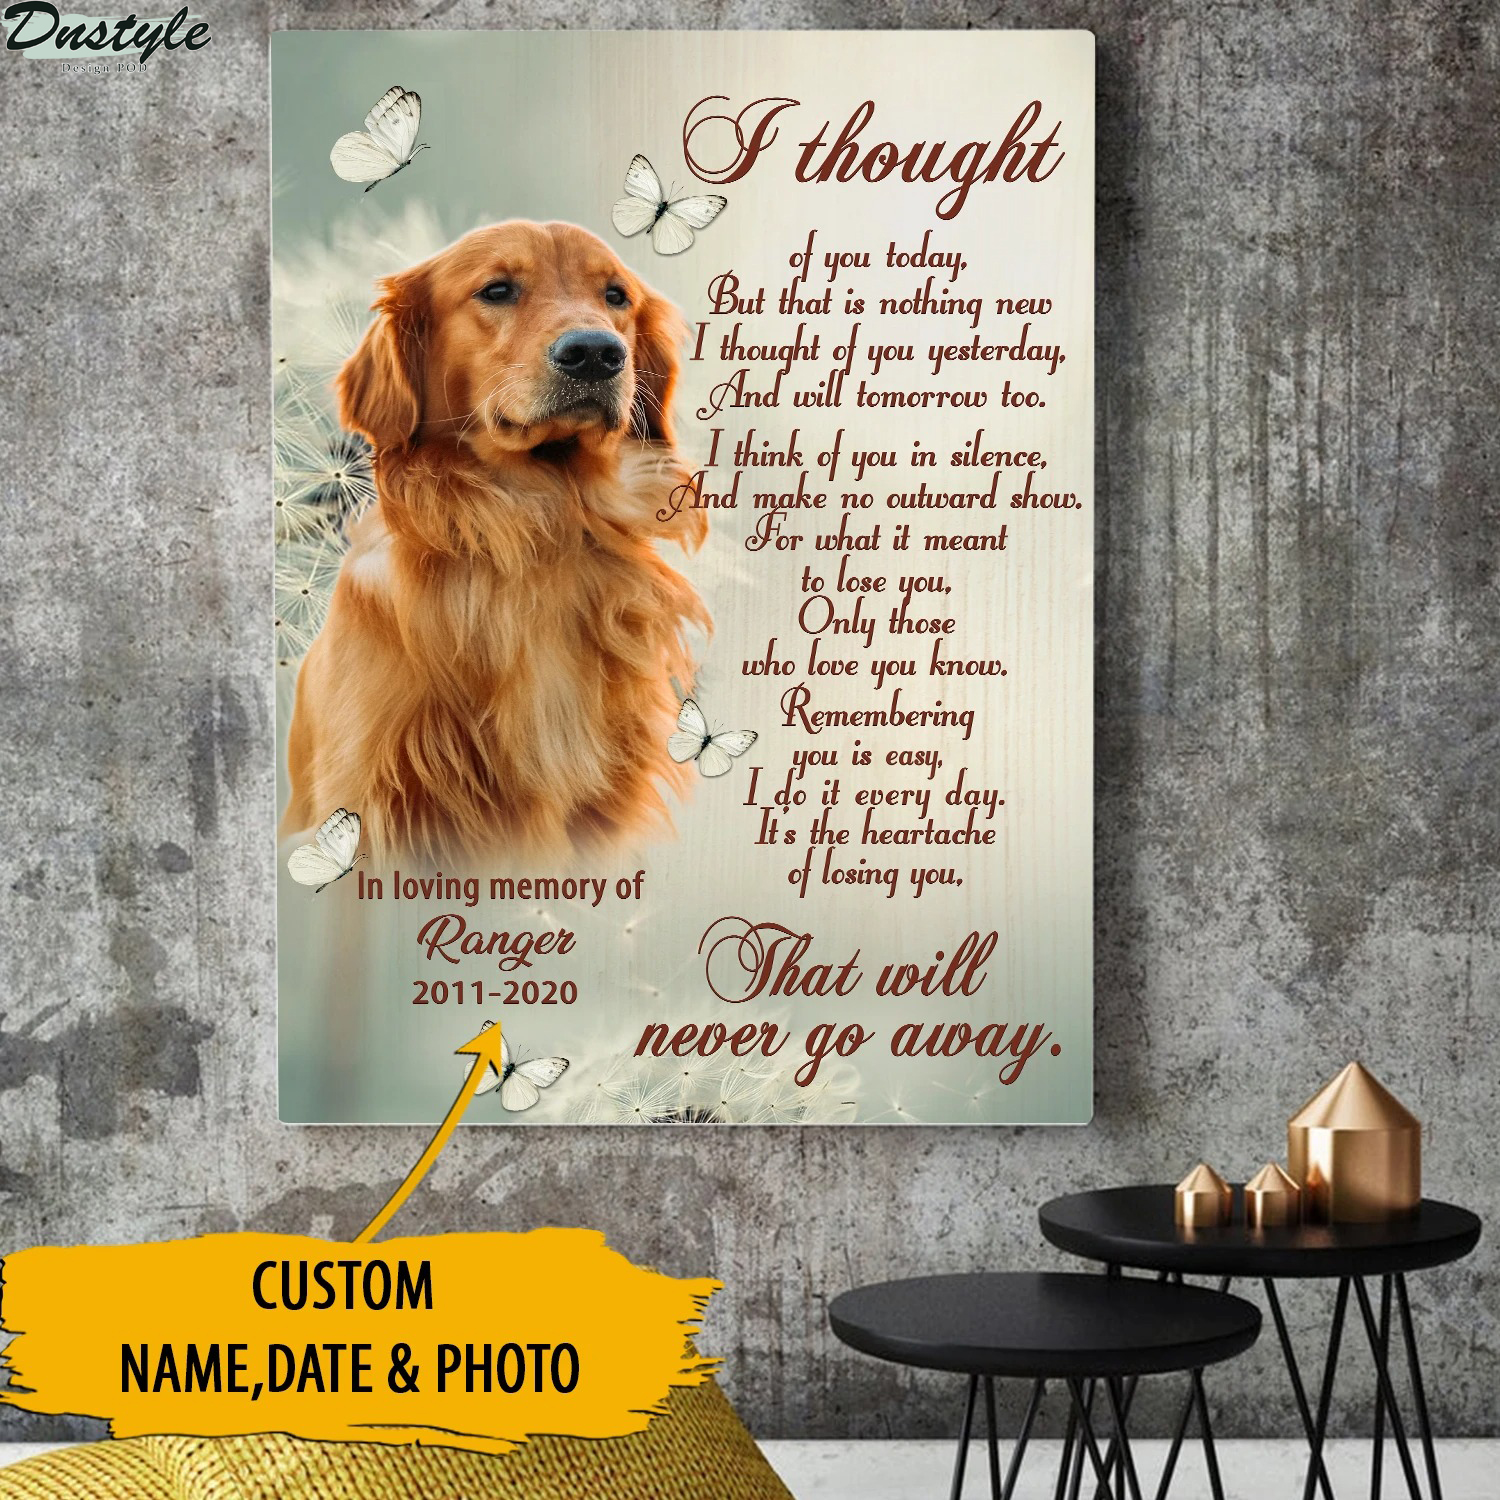 Personalized pet loss I thought of you today canvas